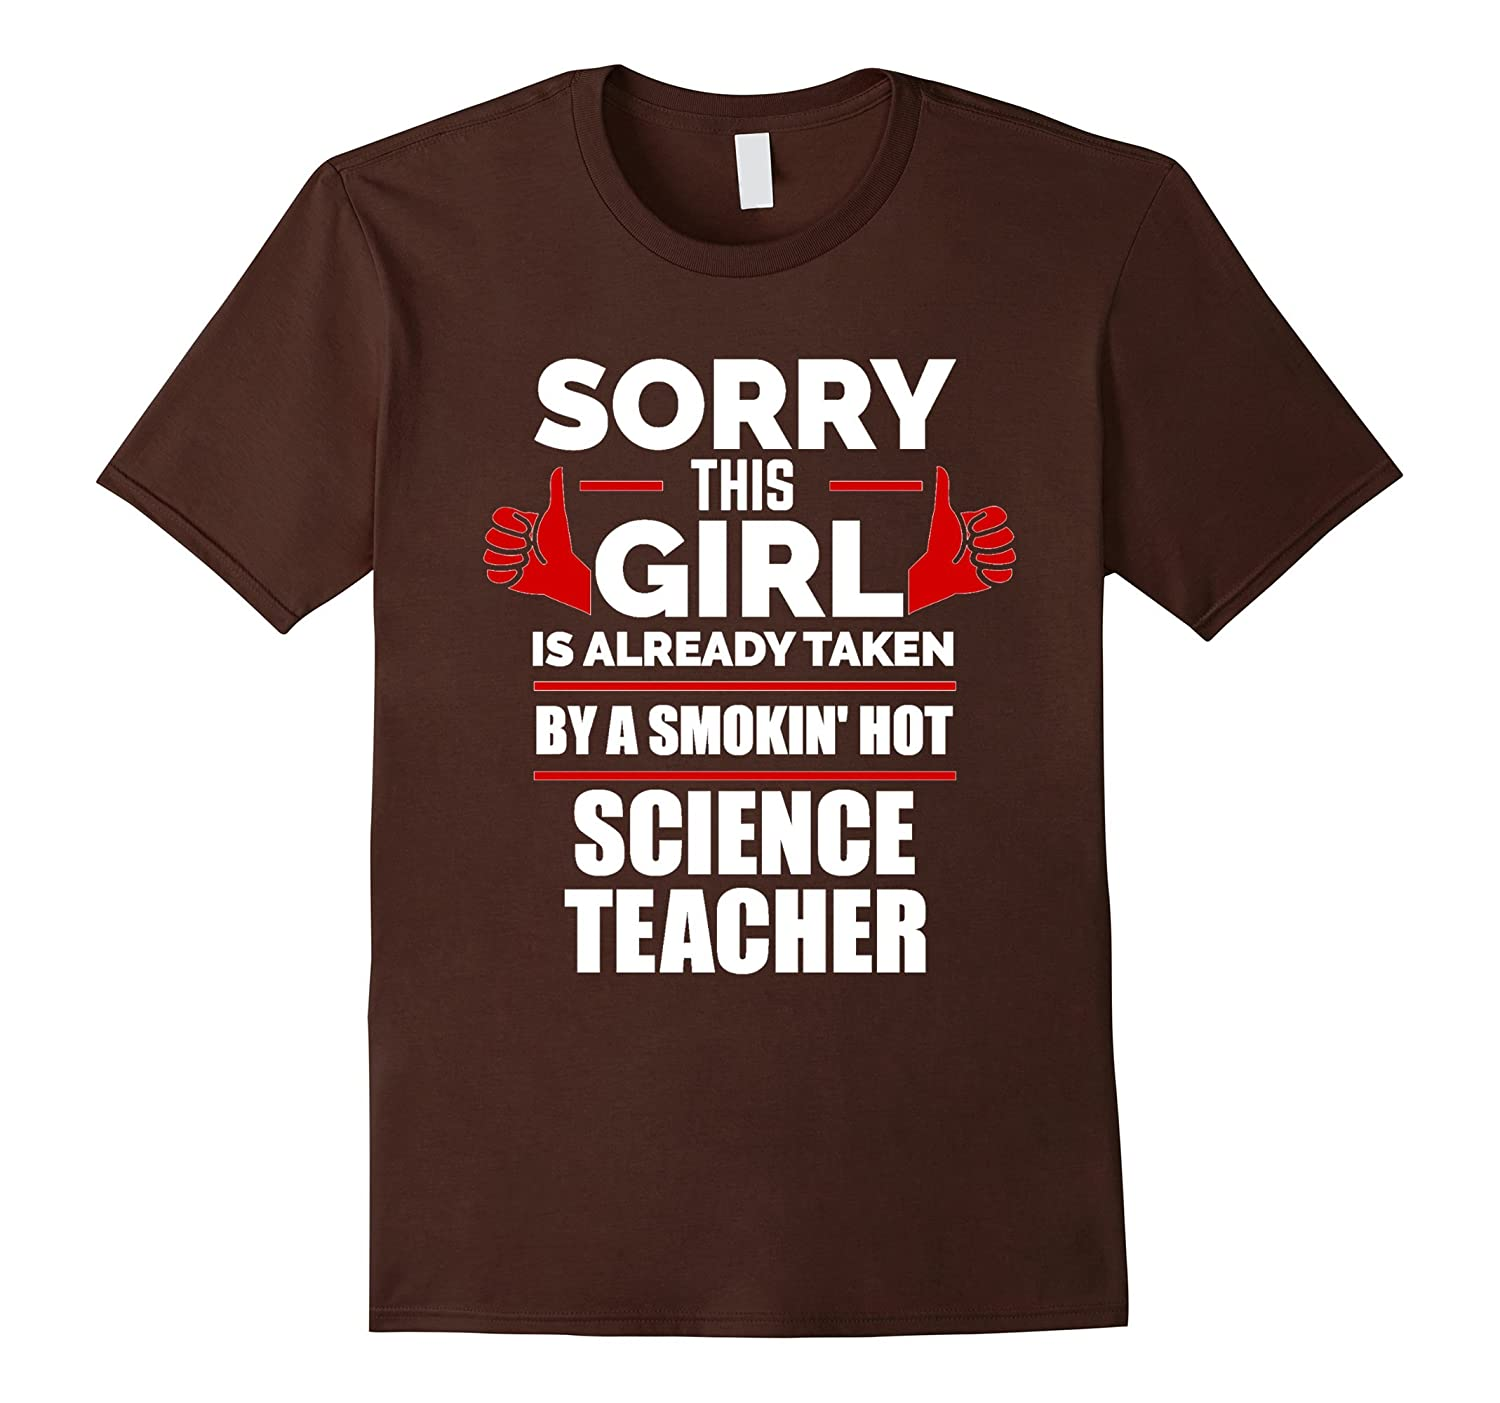 This Girl is Taken by a Smoking Hot Science Teacher T-shirt